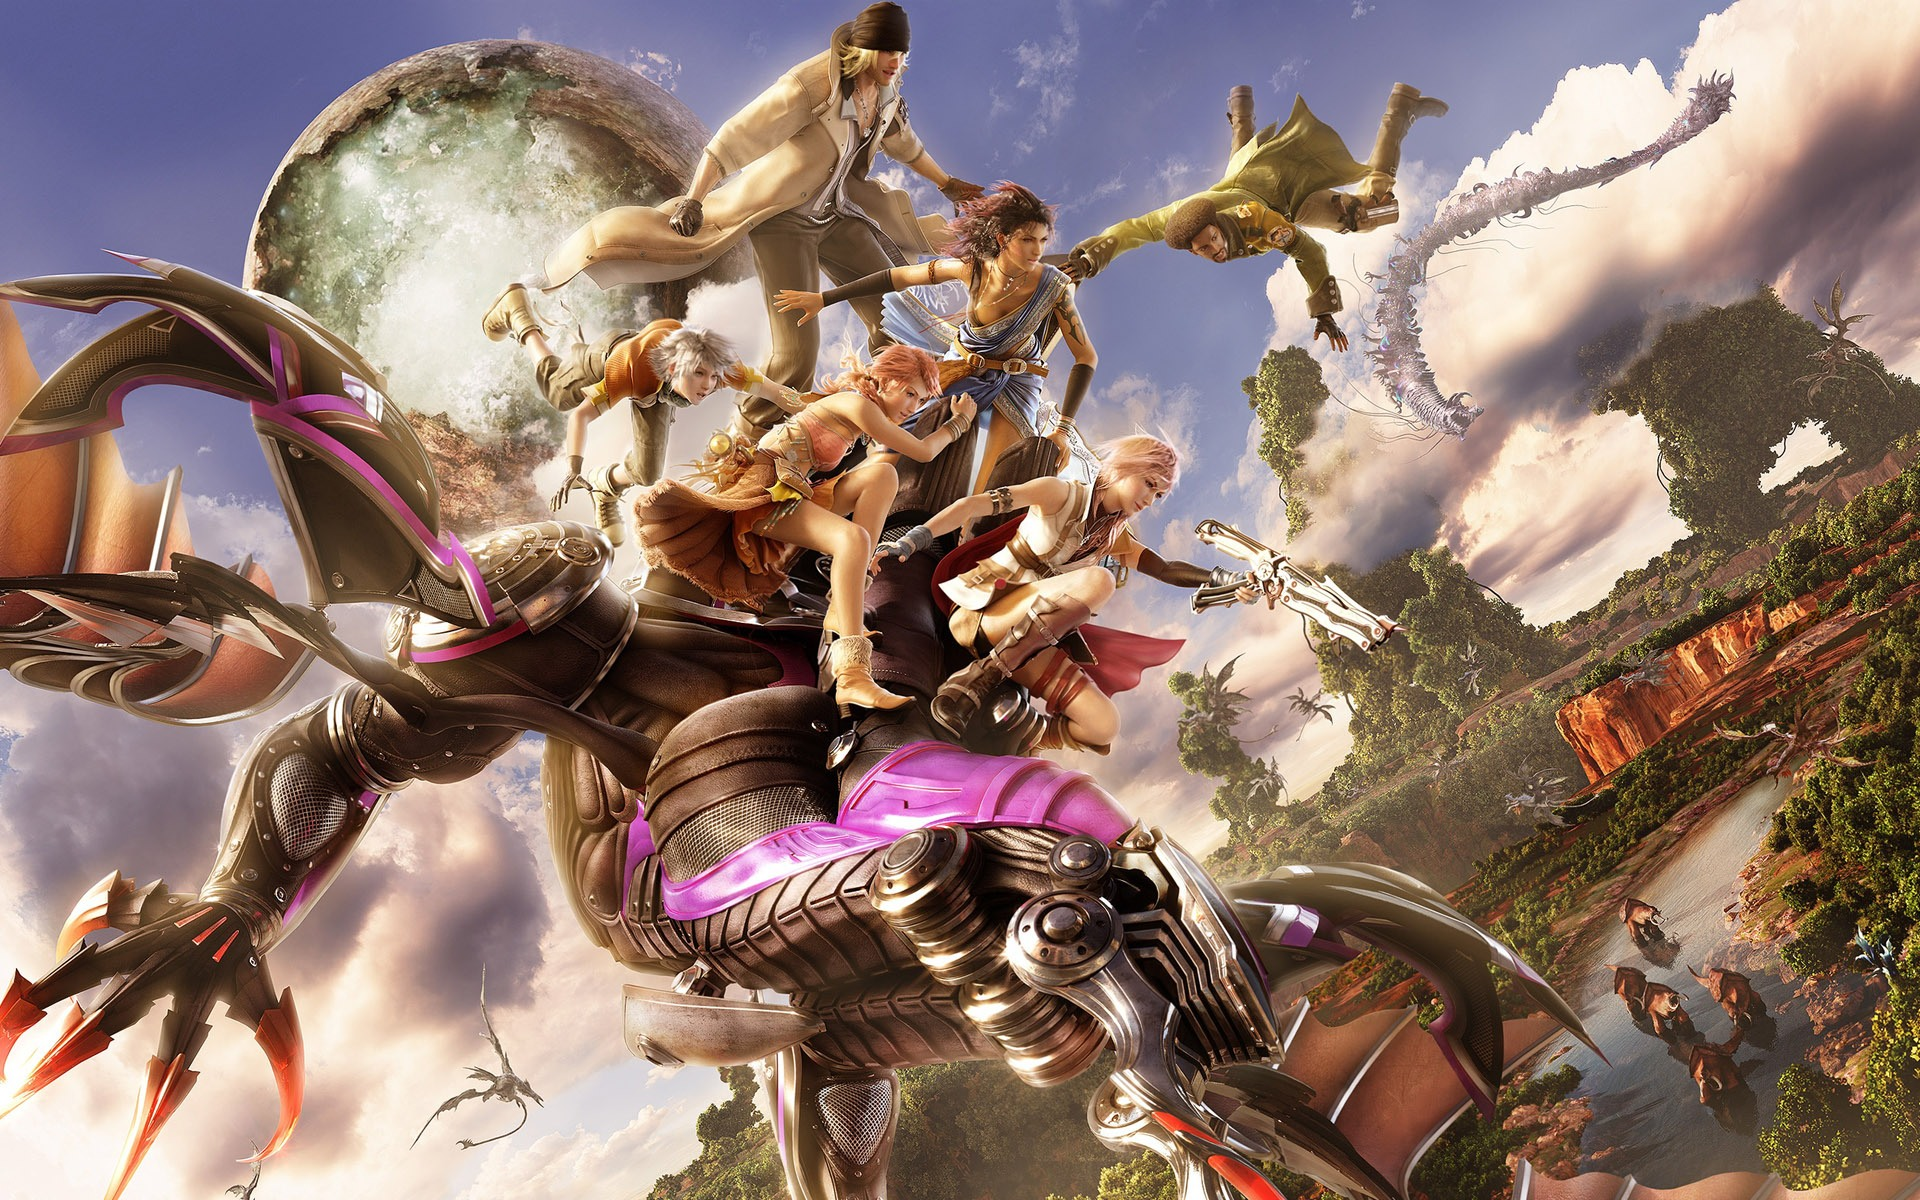 Final Fantasy XIII desktop wallpaper 1920x1200